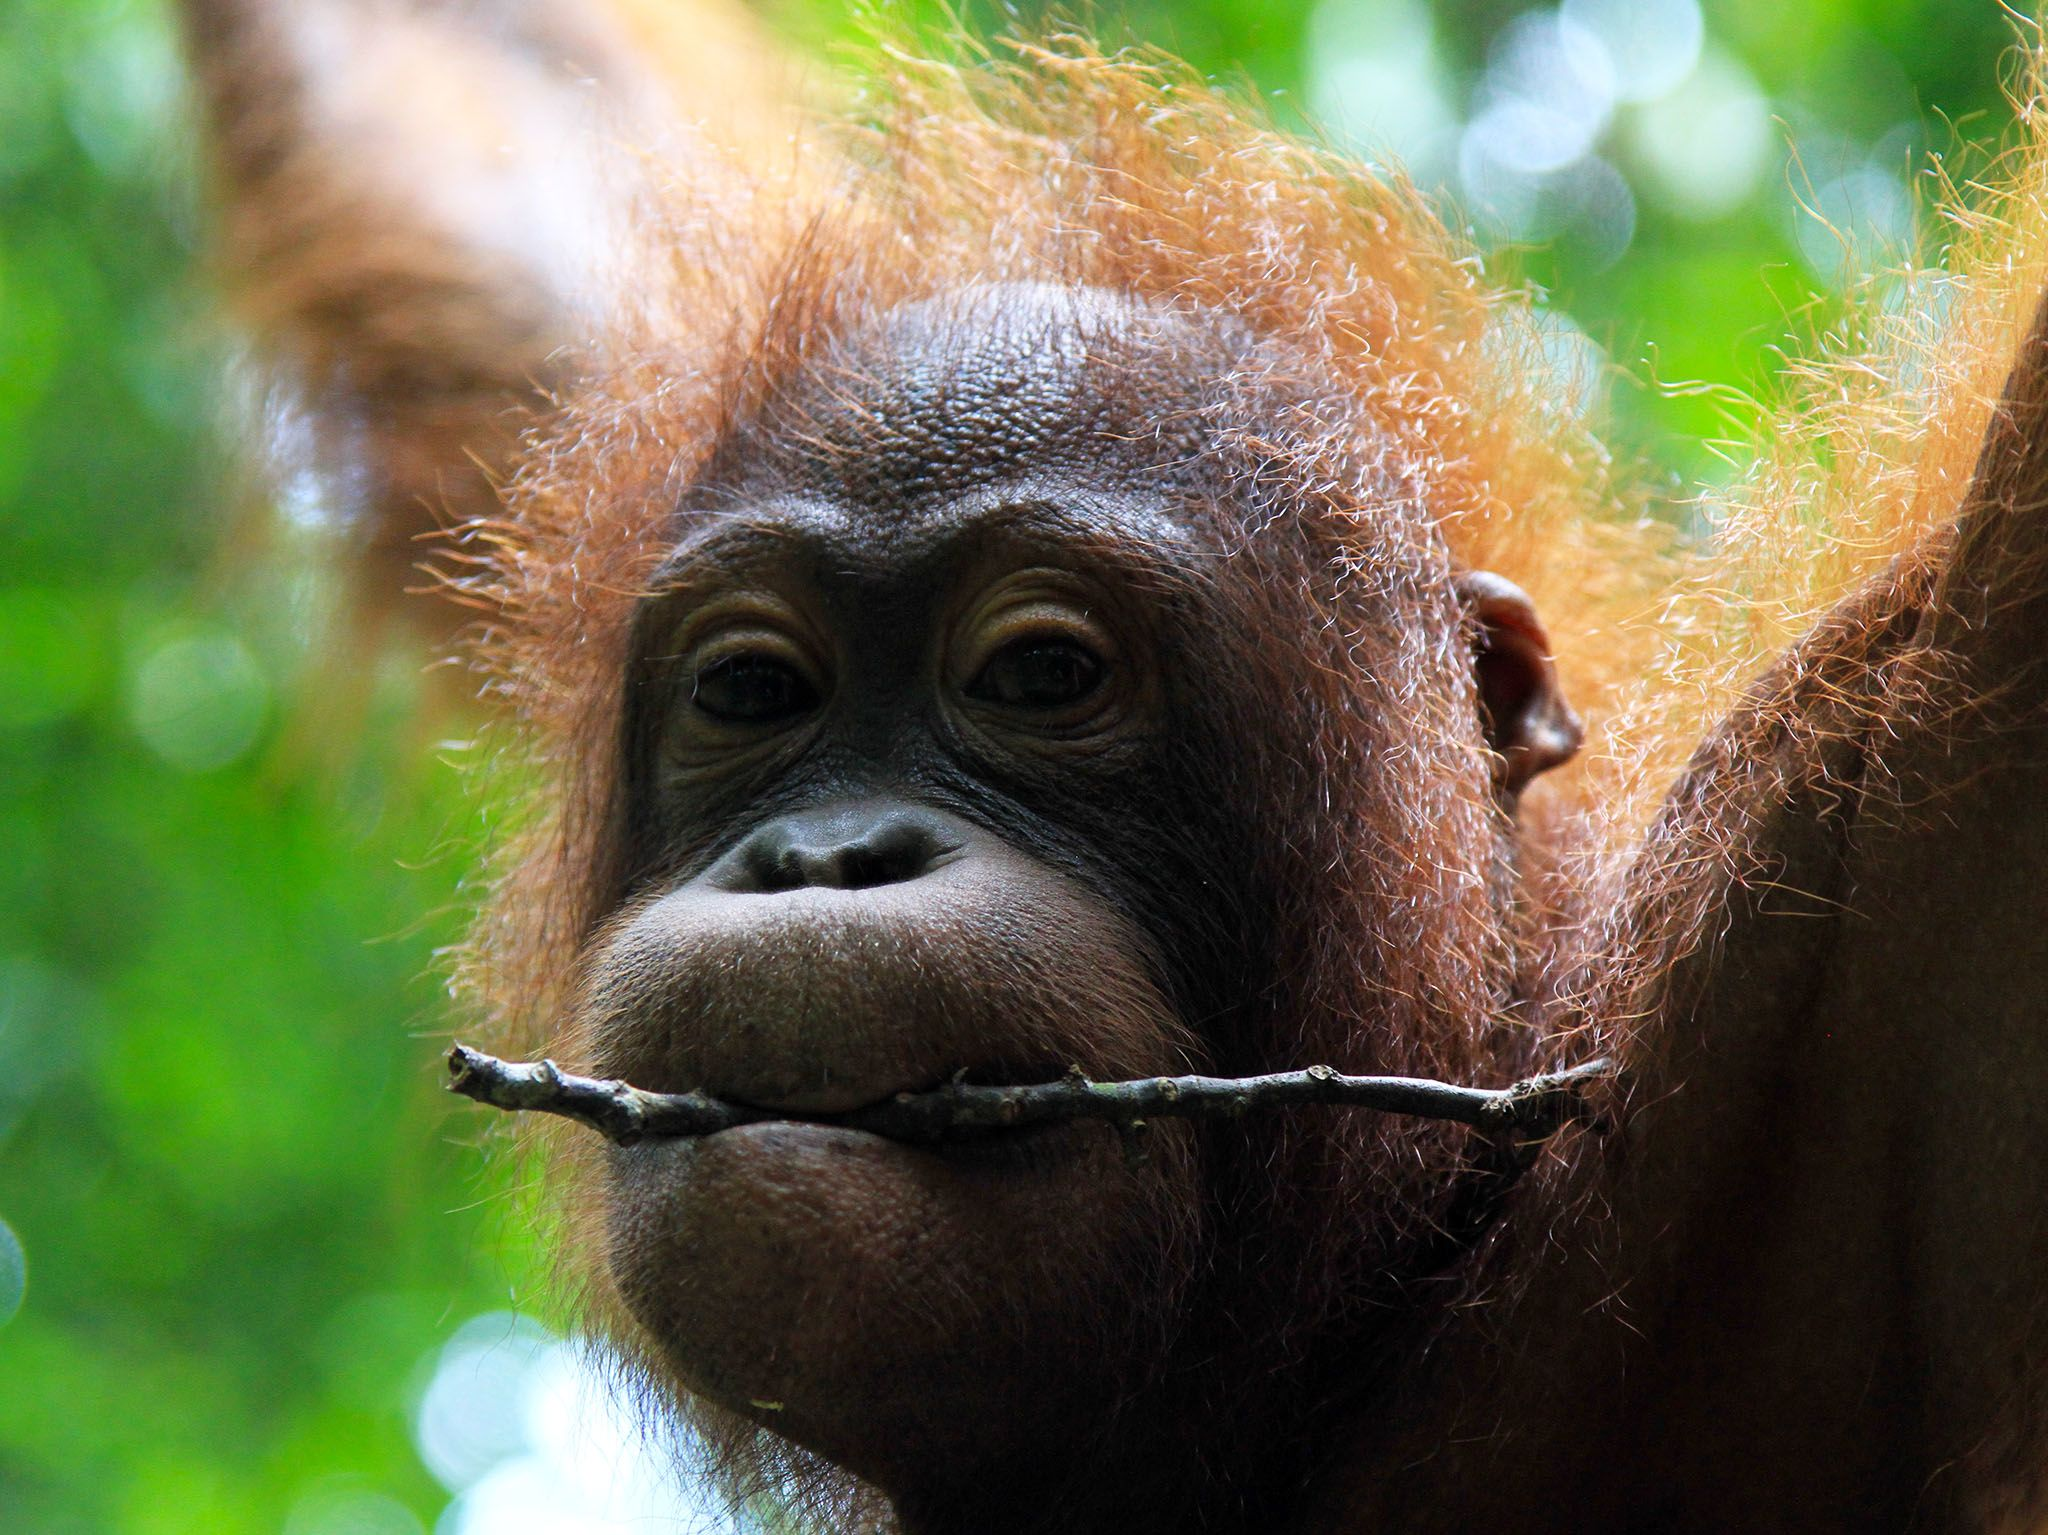 Malaysia: Baby orangutan holding stick in mouth. This image is from Borneo's Secret Kingdom. [Photo of the day - 一月 2017]